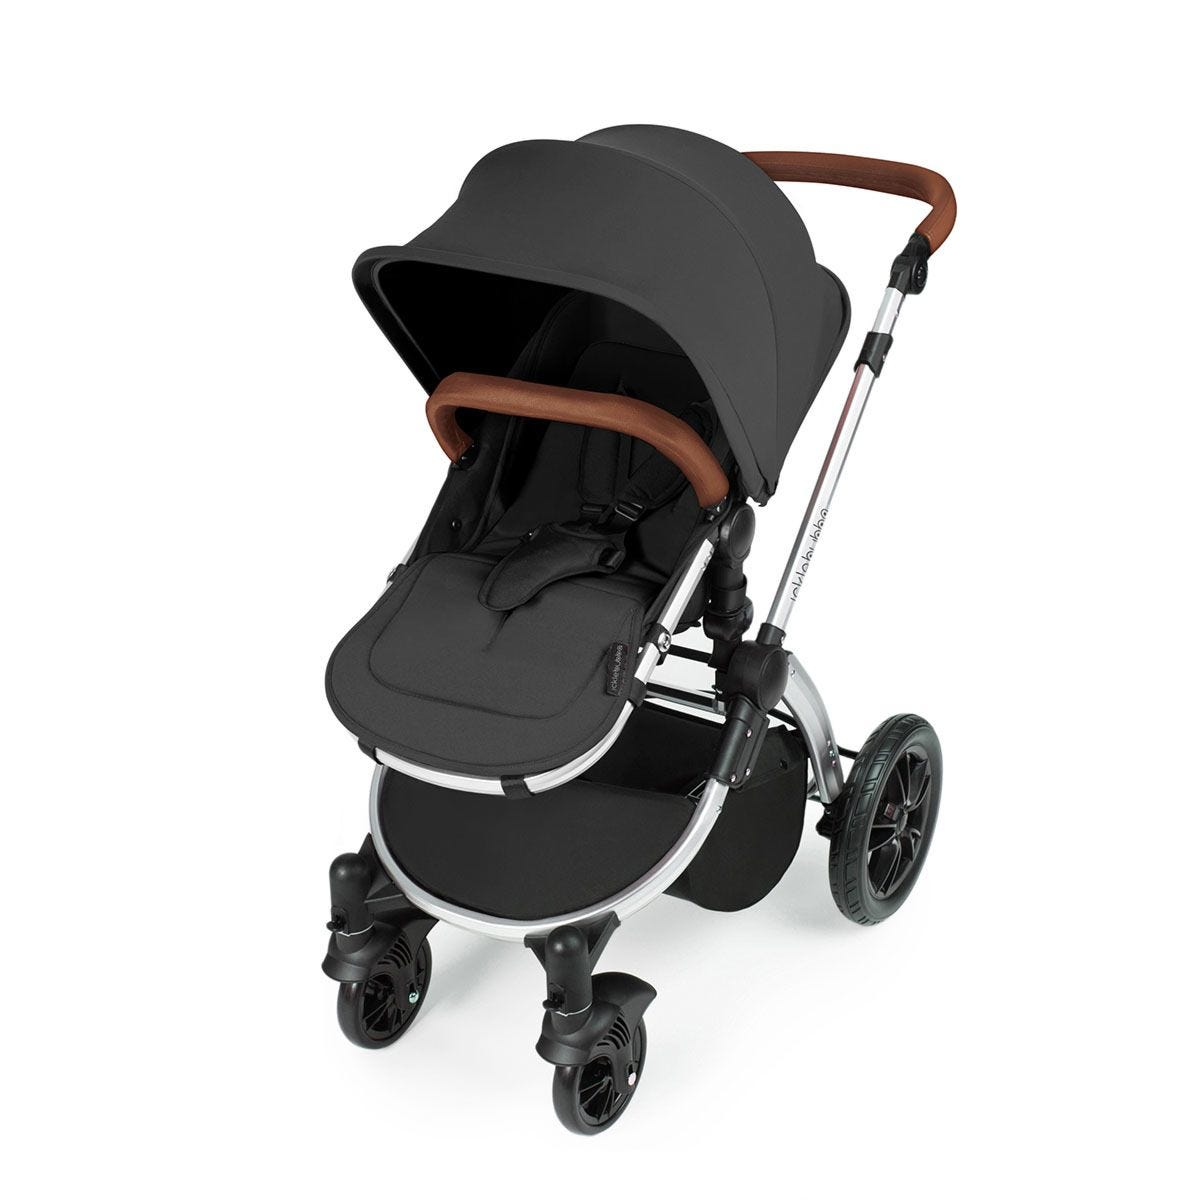 Ickle Bubba Stomp V3 i-Size Travel System with Isofix Base -Graphite Grey on Silver with Tan Handles